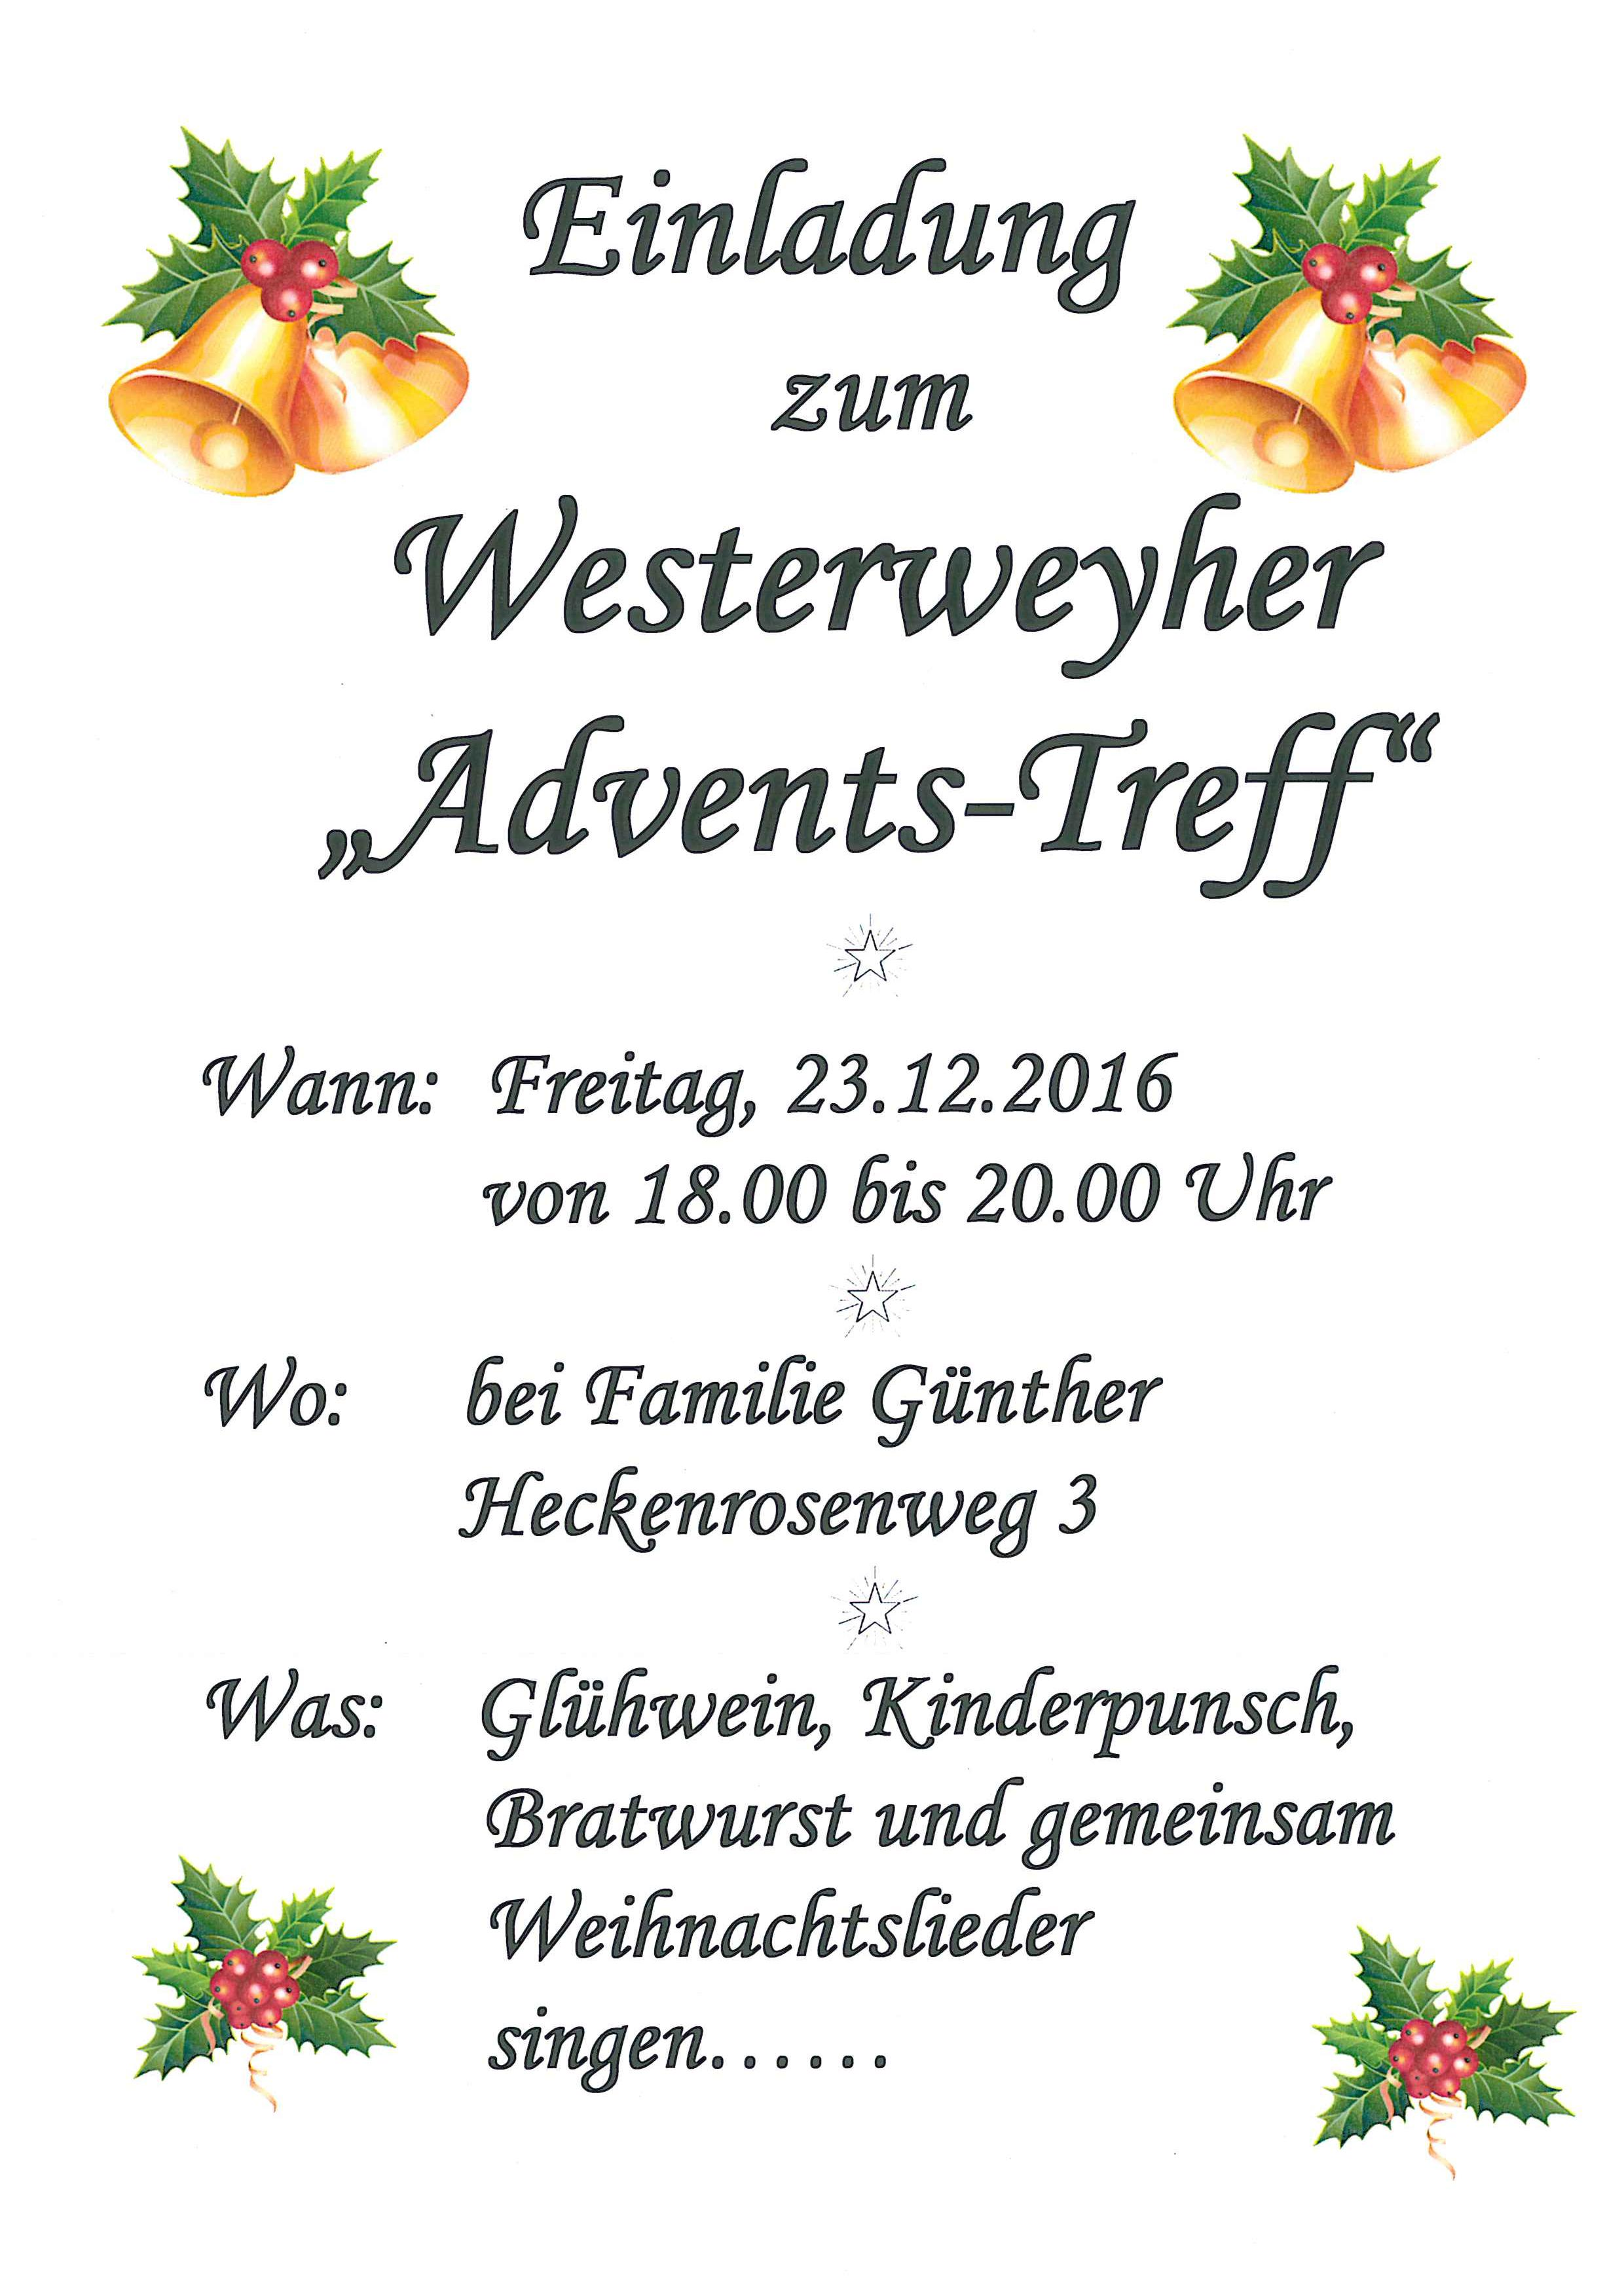 advents-treff_23.12.2016.jpg